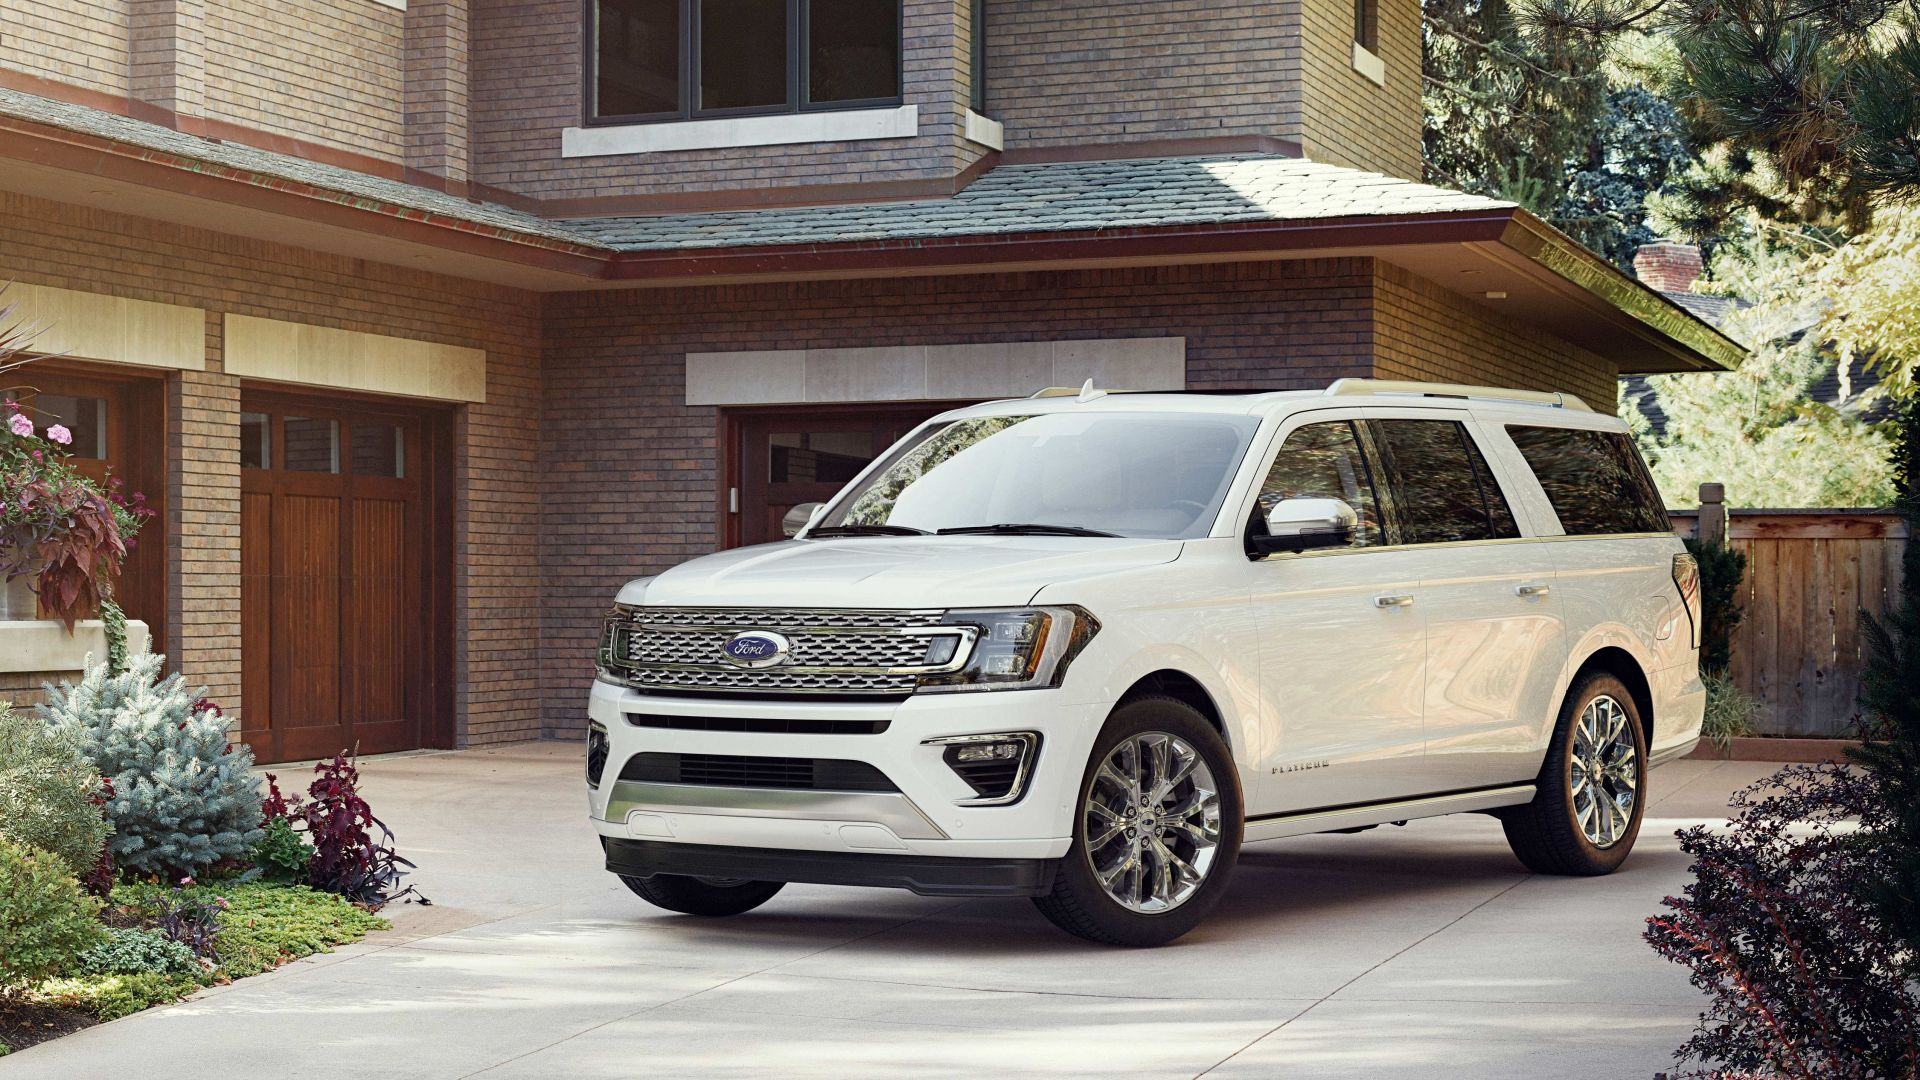 Ford Expedition, SUV, 2018 Cars, 4K (horizontal)